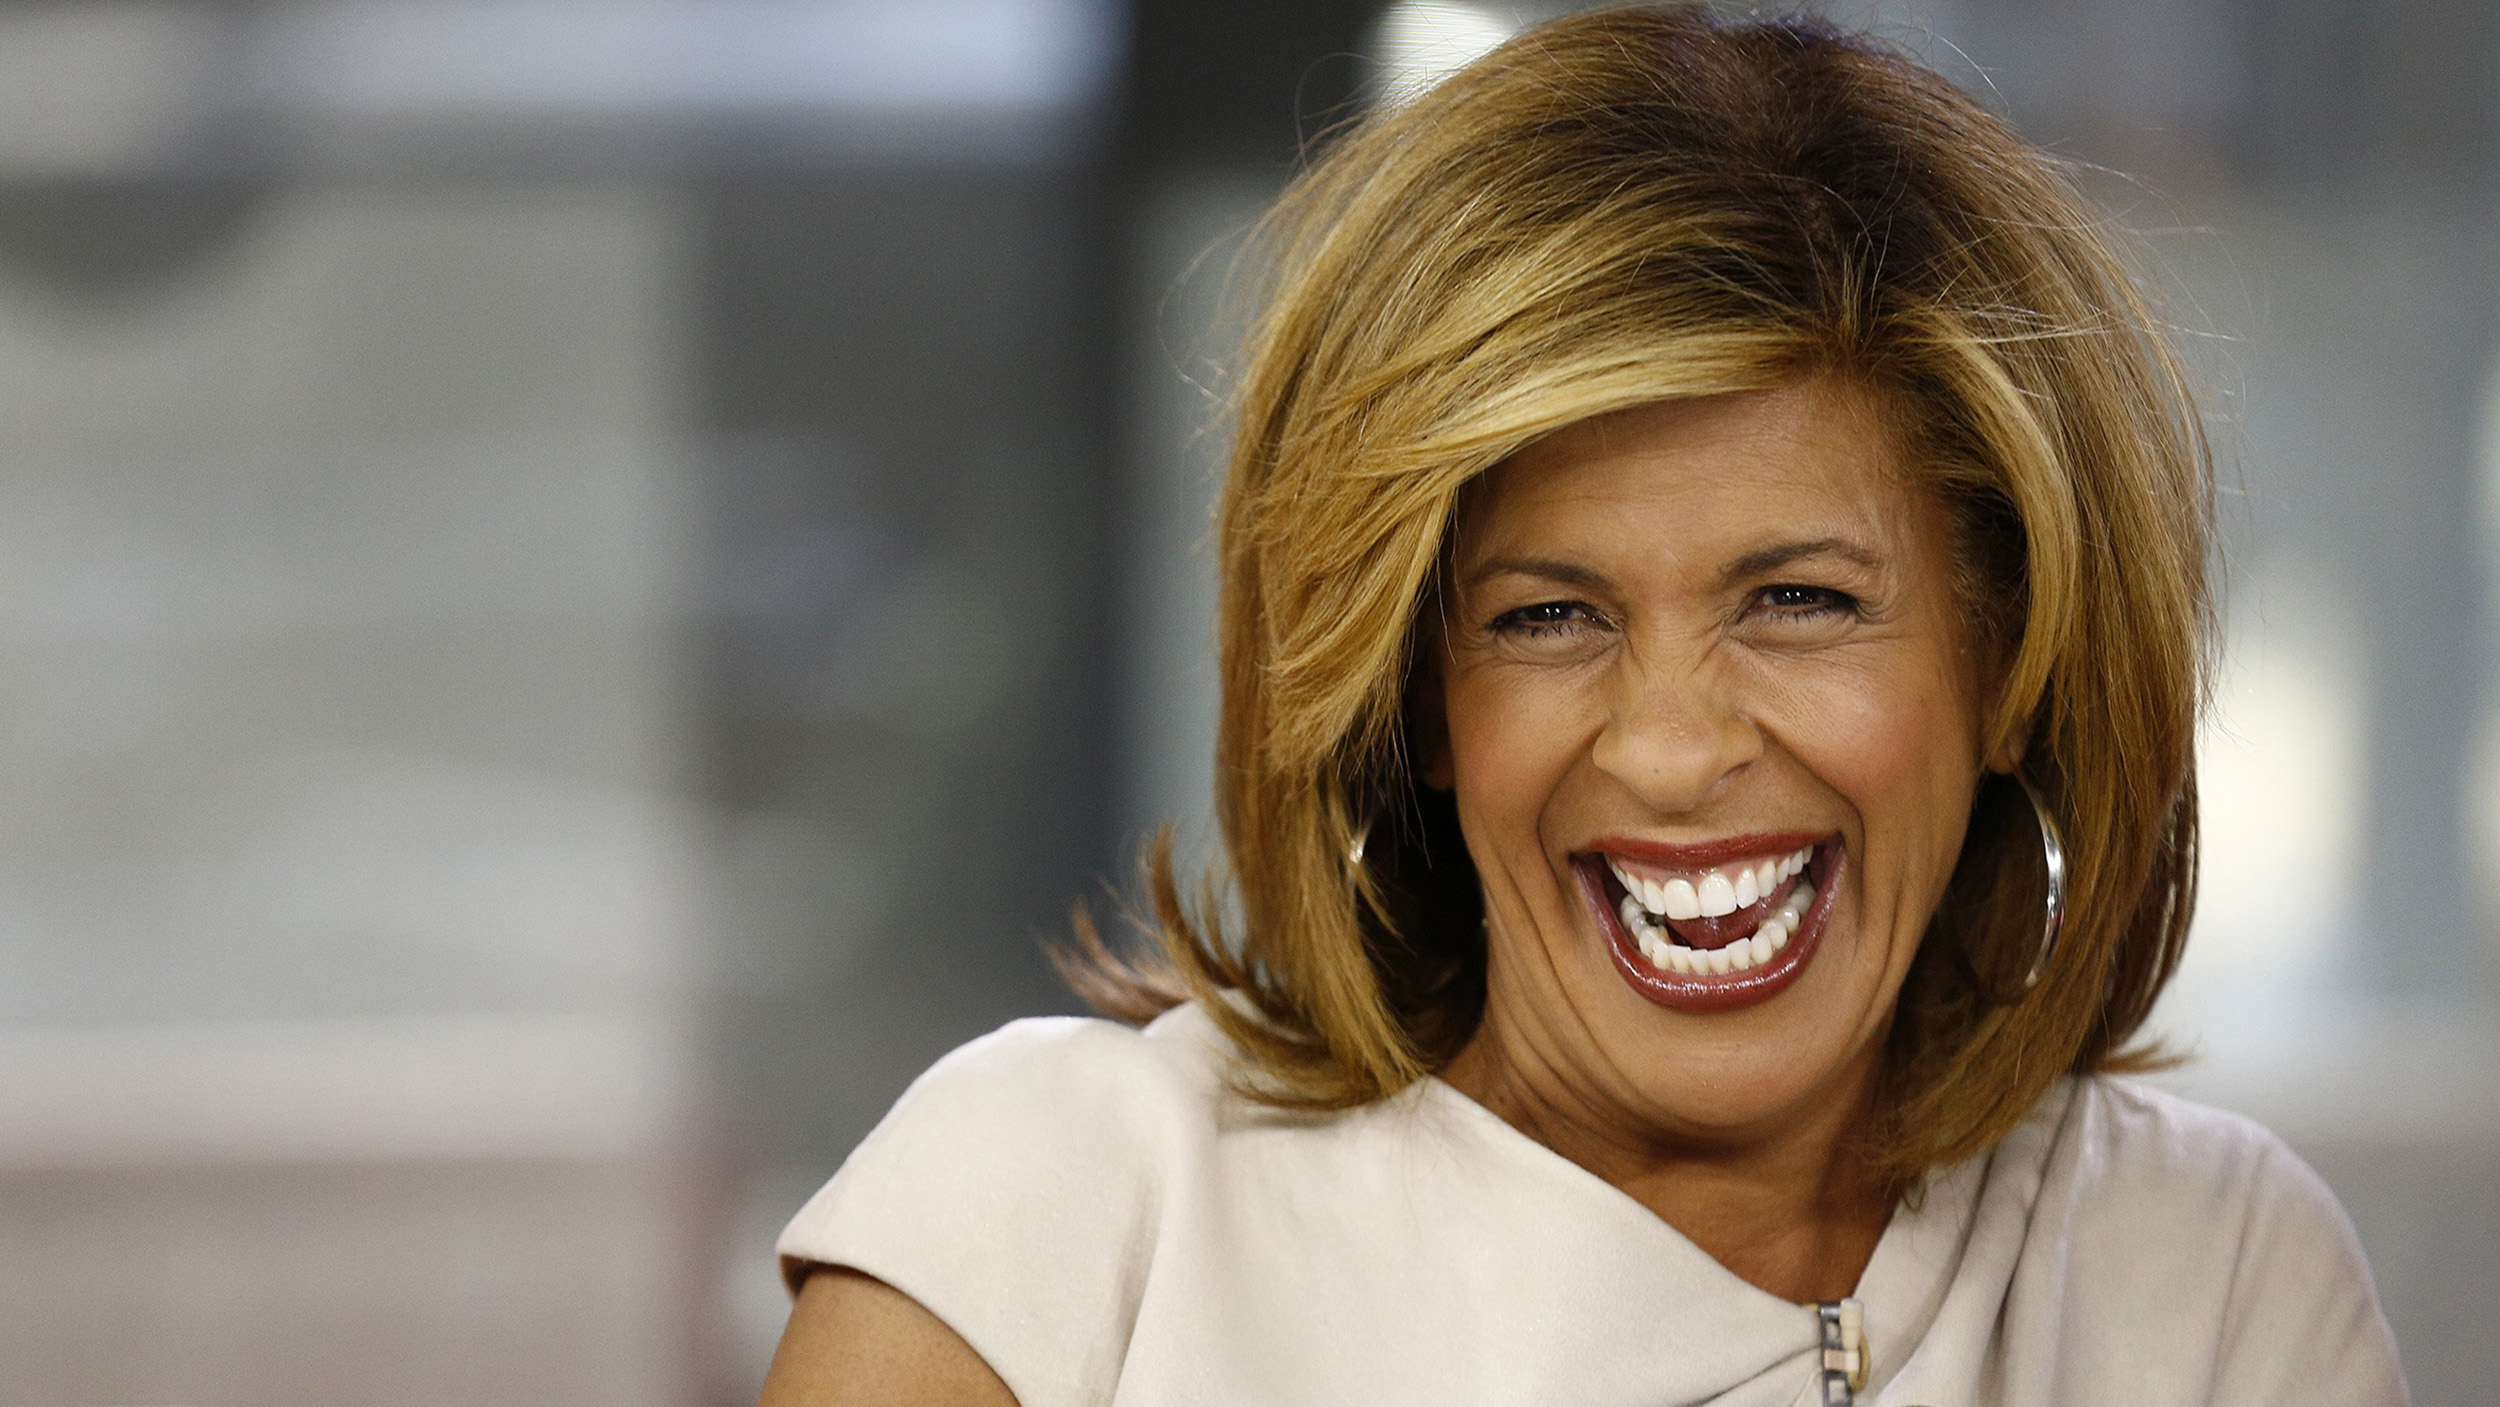 hoda kotb nationality